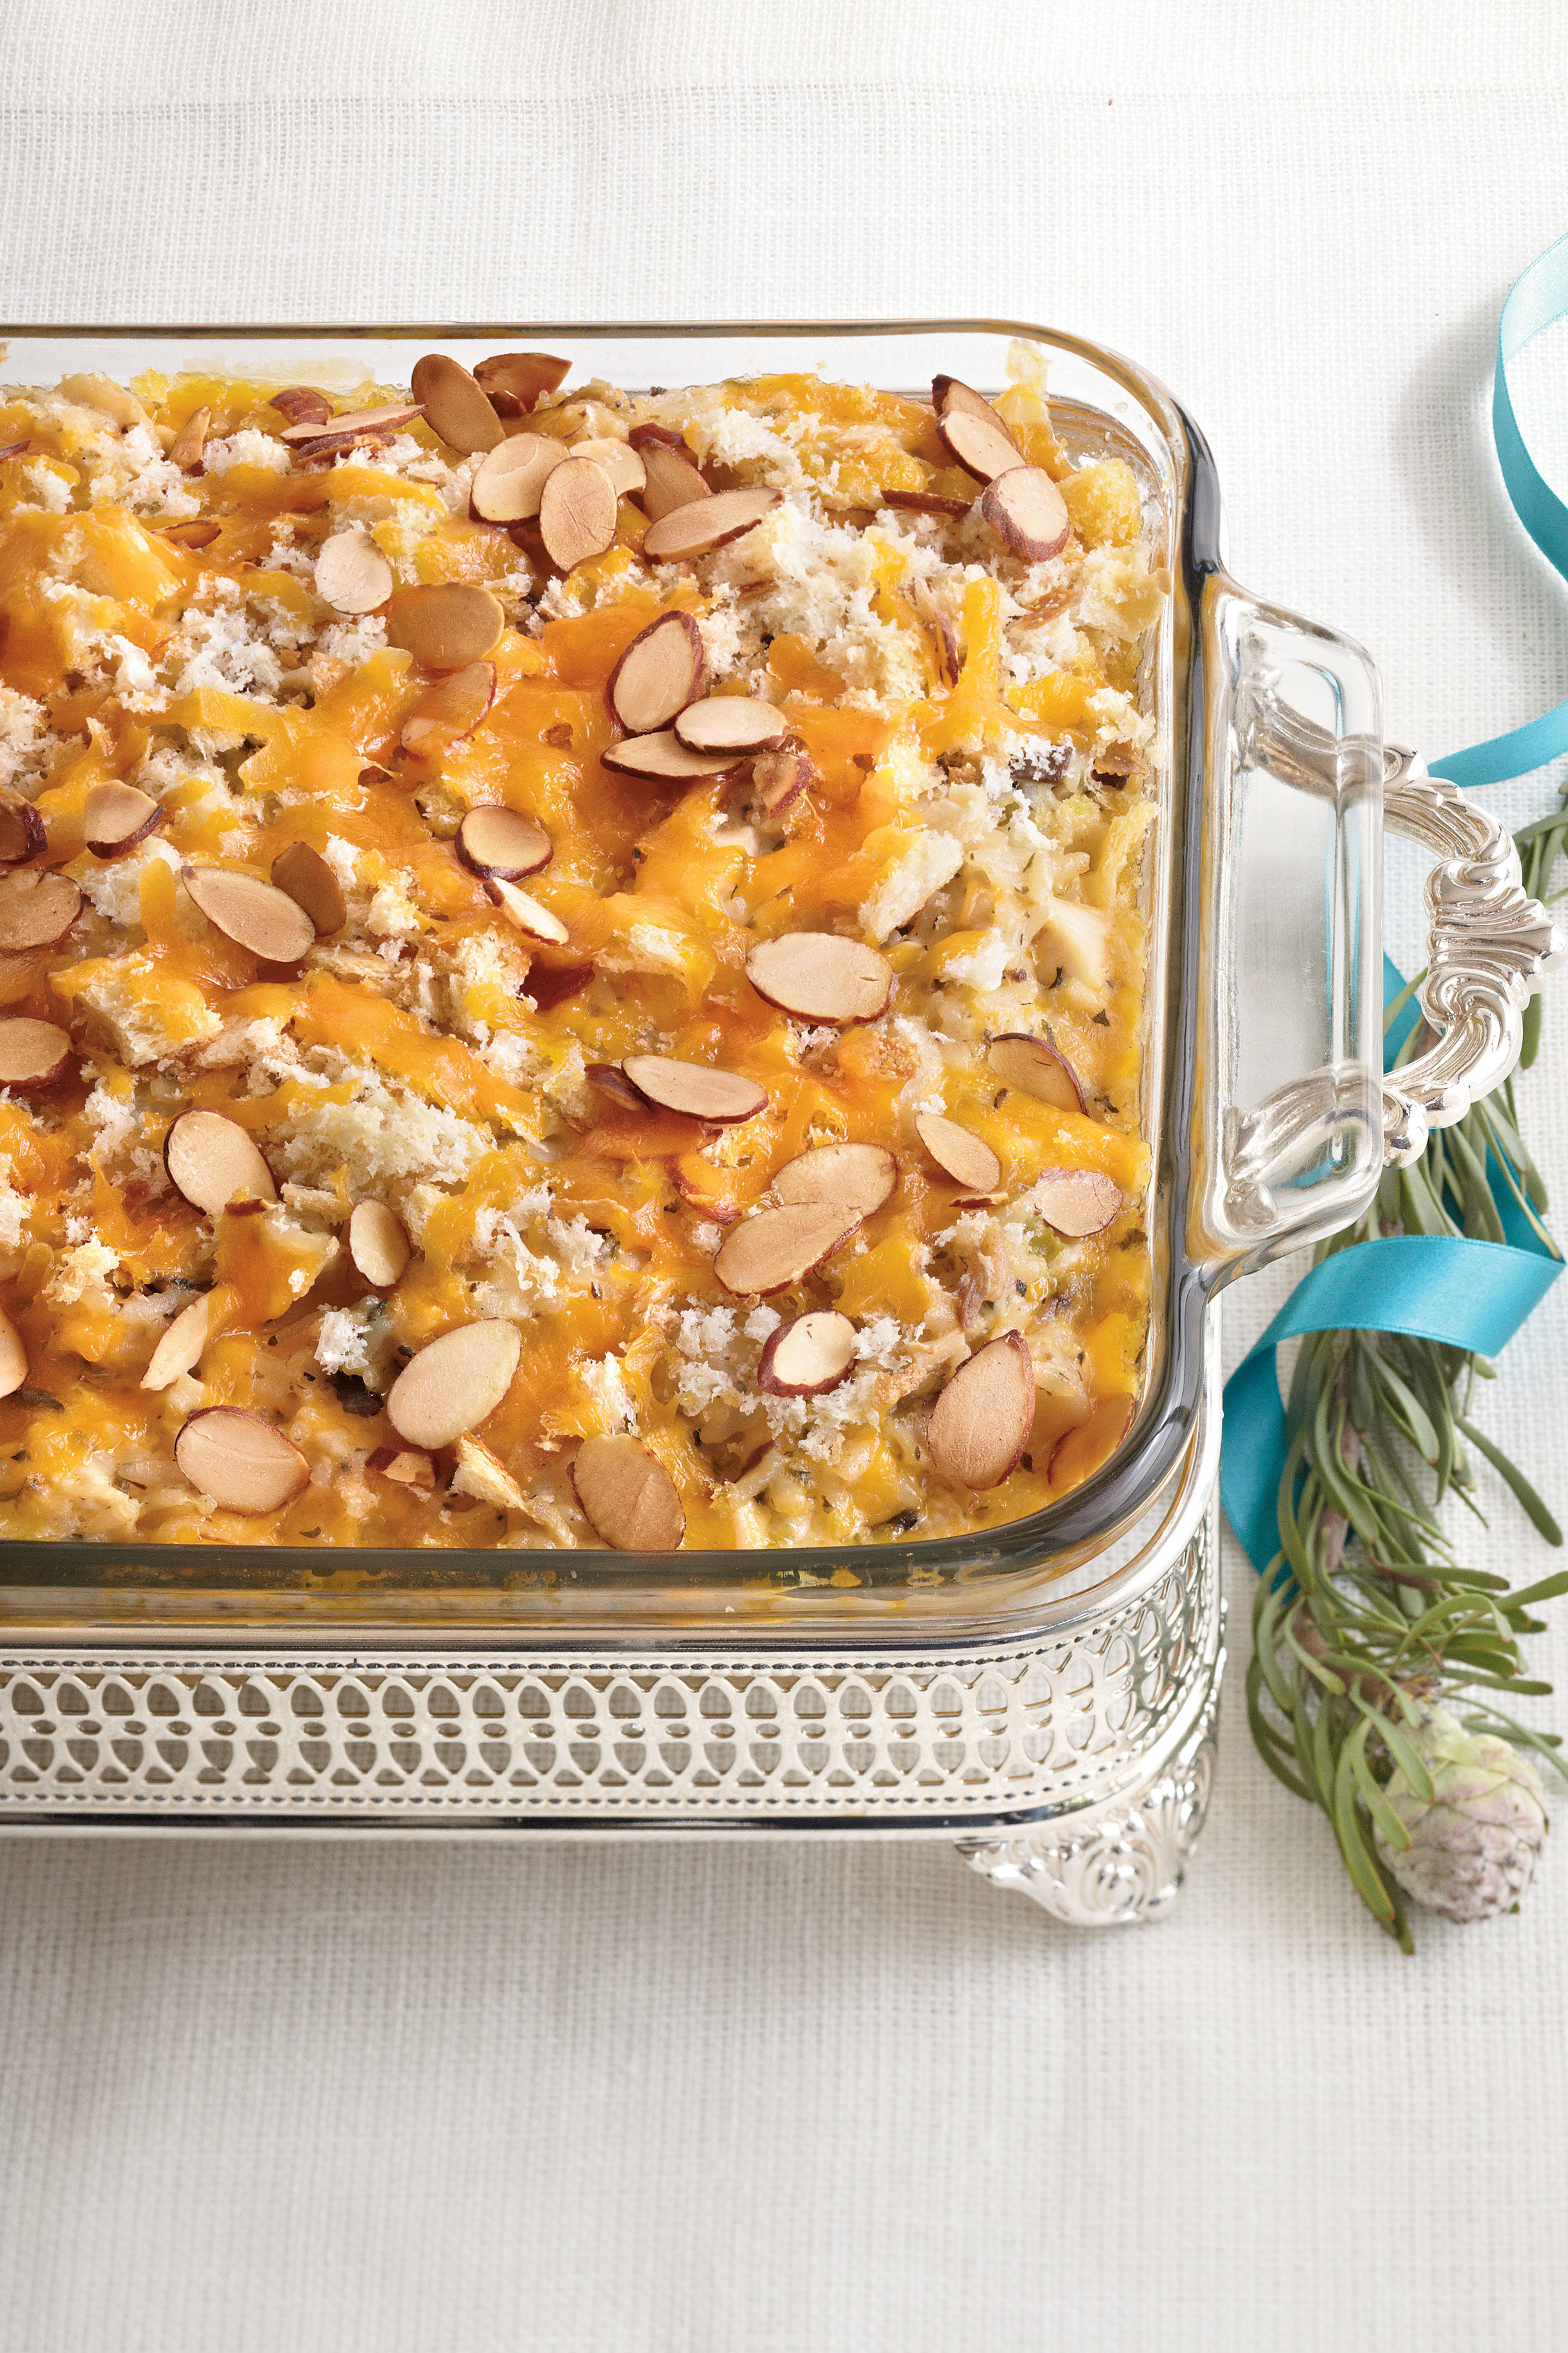 My Go-To Casserole For Bringing To a New Mom